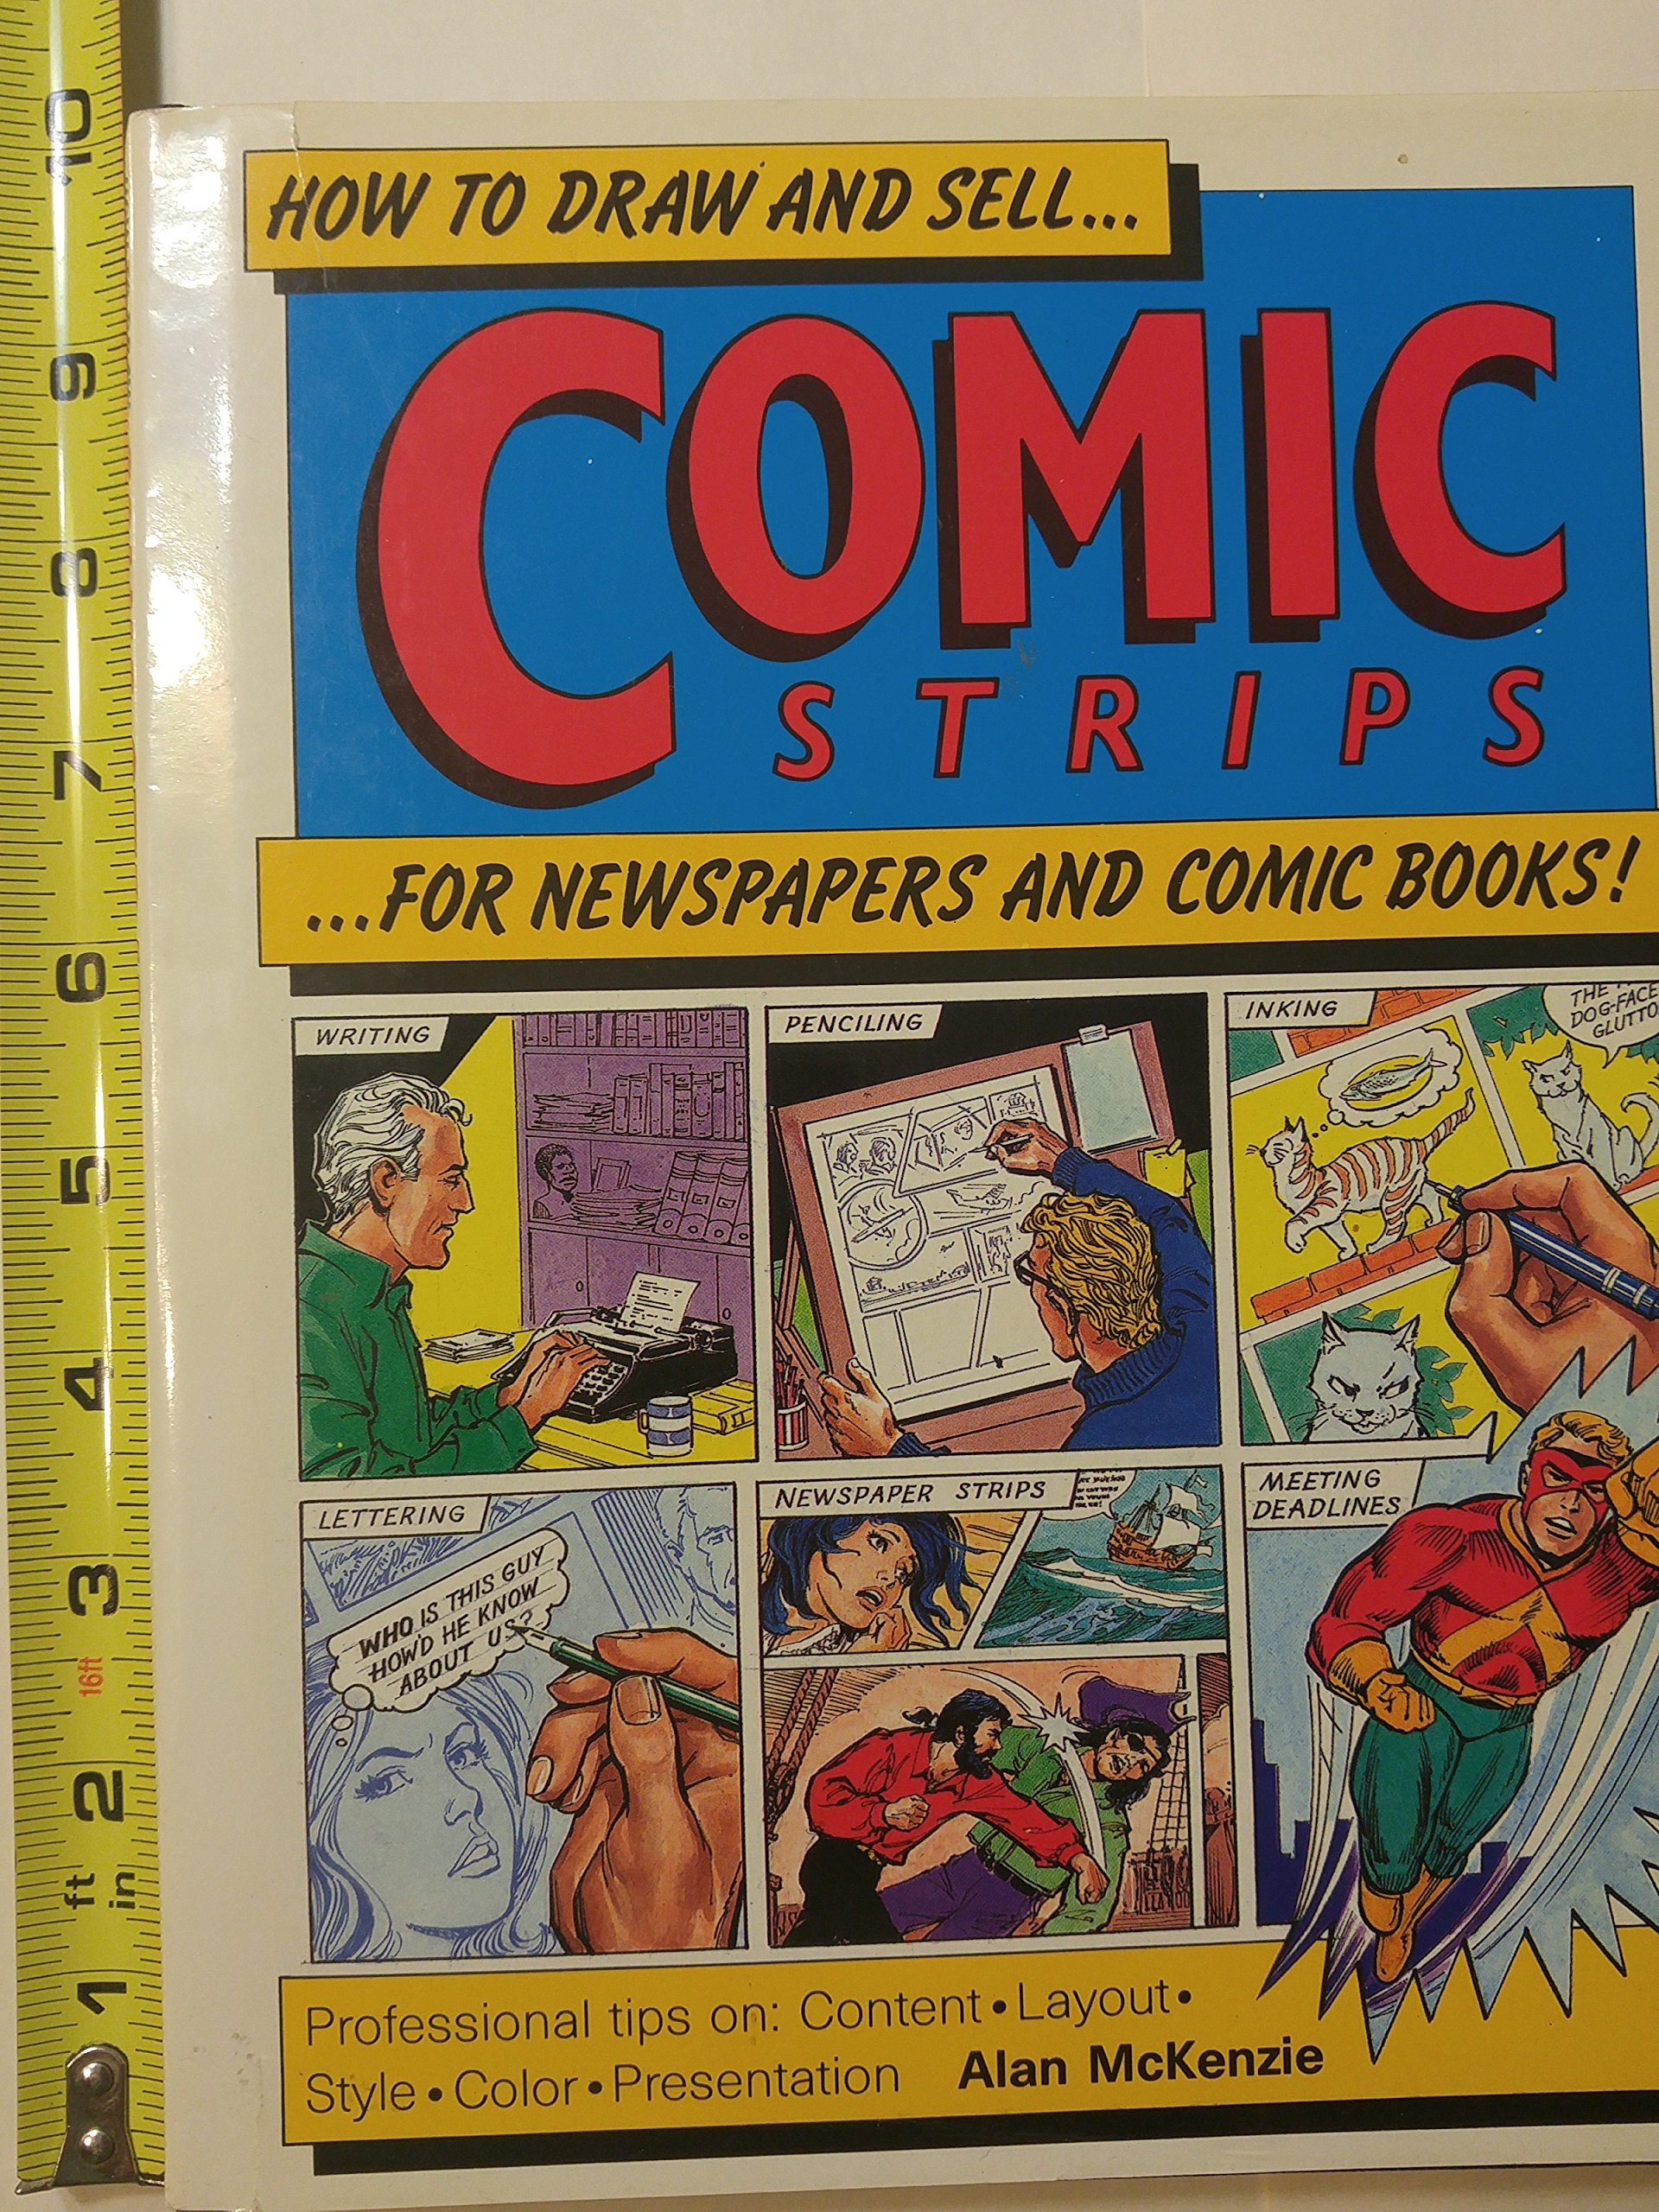 How To Draw And Sell Comic Strips For Newspapers And